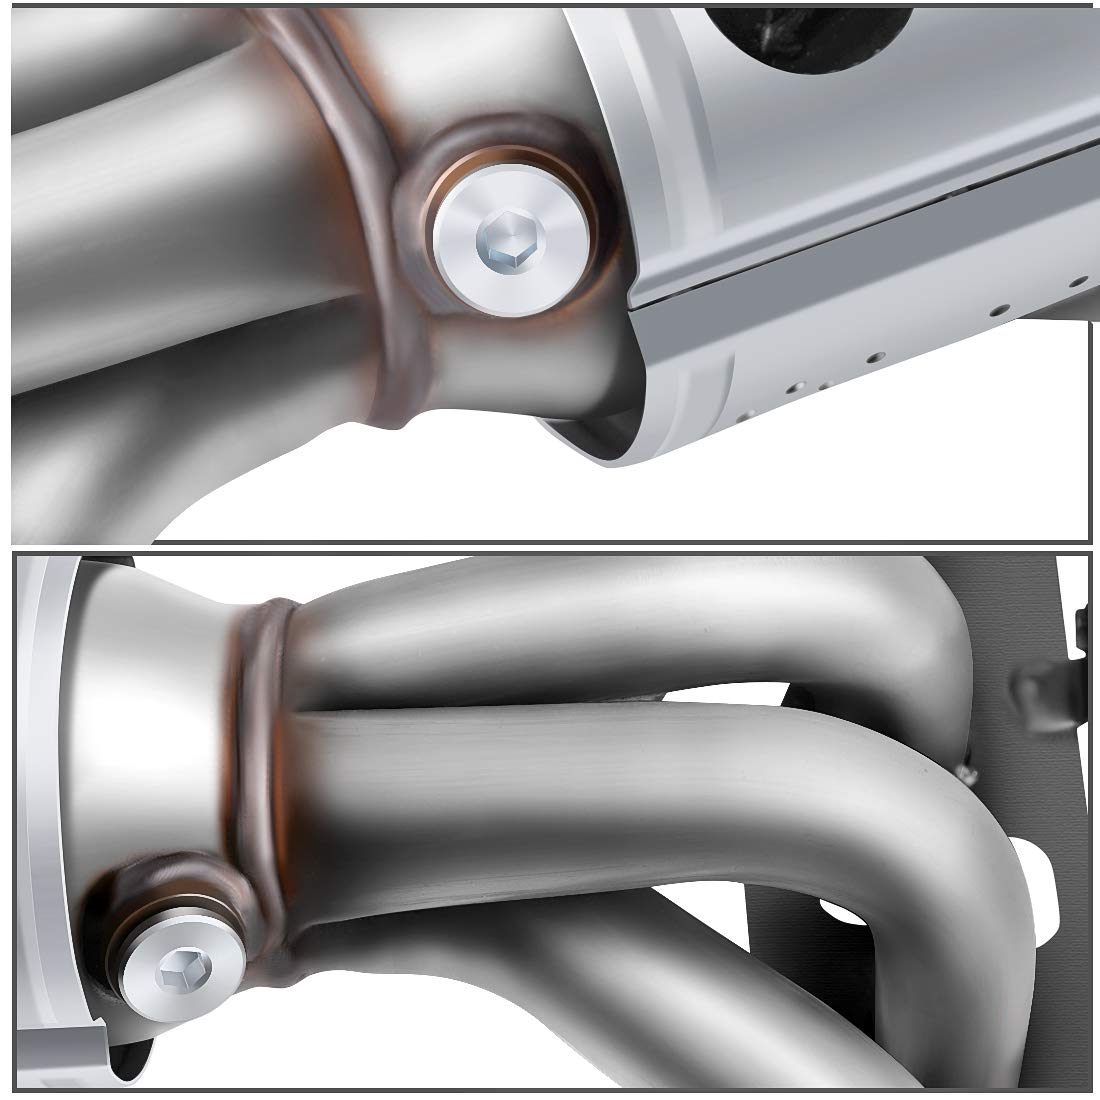 EPA Compliant Catalytic Converter for 2002-2006 Nissan Altima//Sentra 2.5L Front Exhaust Manifold w//Heat Shield